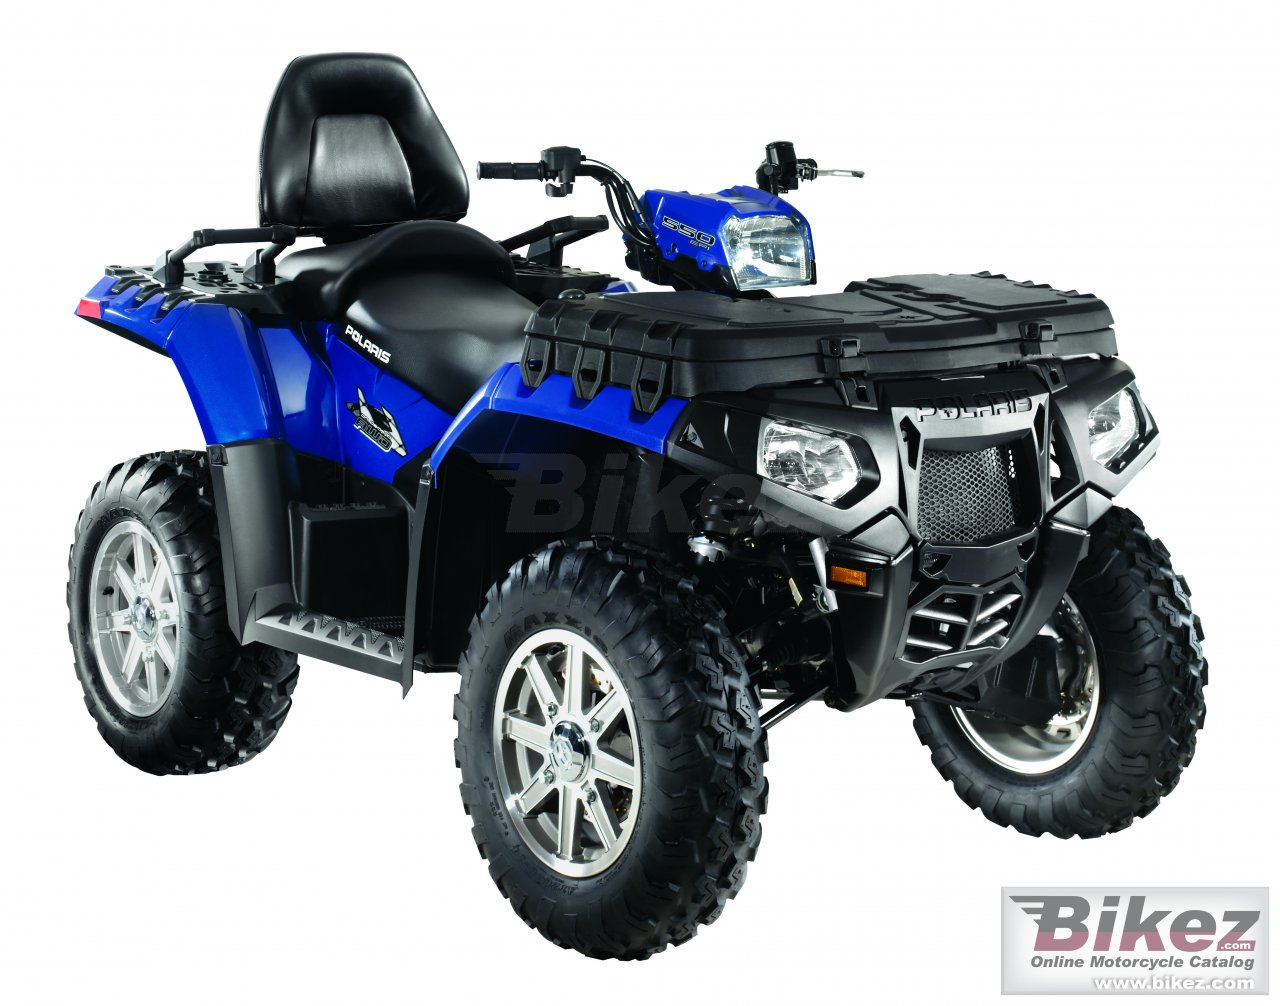 Big Polaris sportsman 550 touring picture and wallpaper from Bikez.com